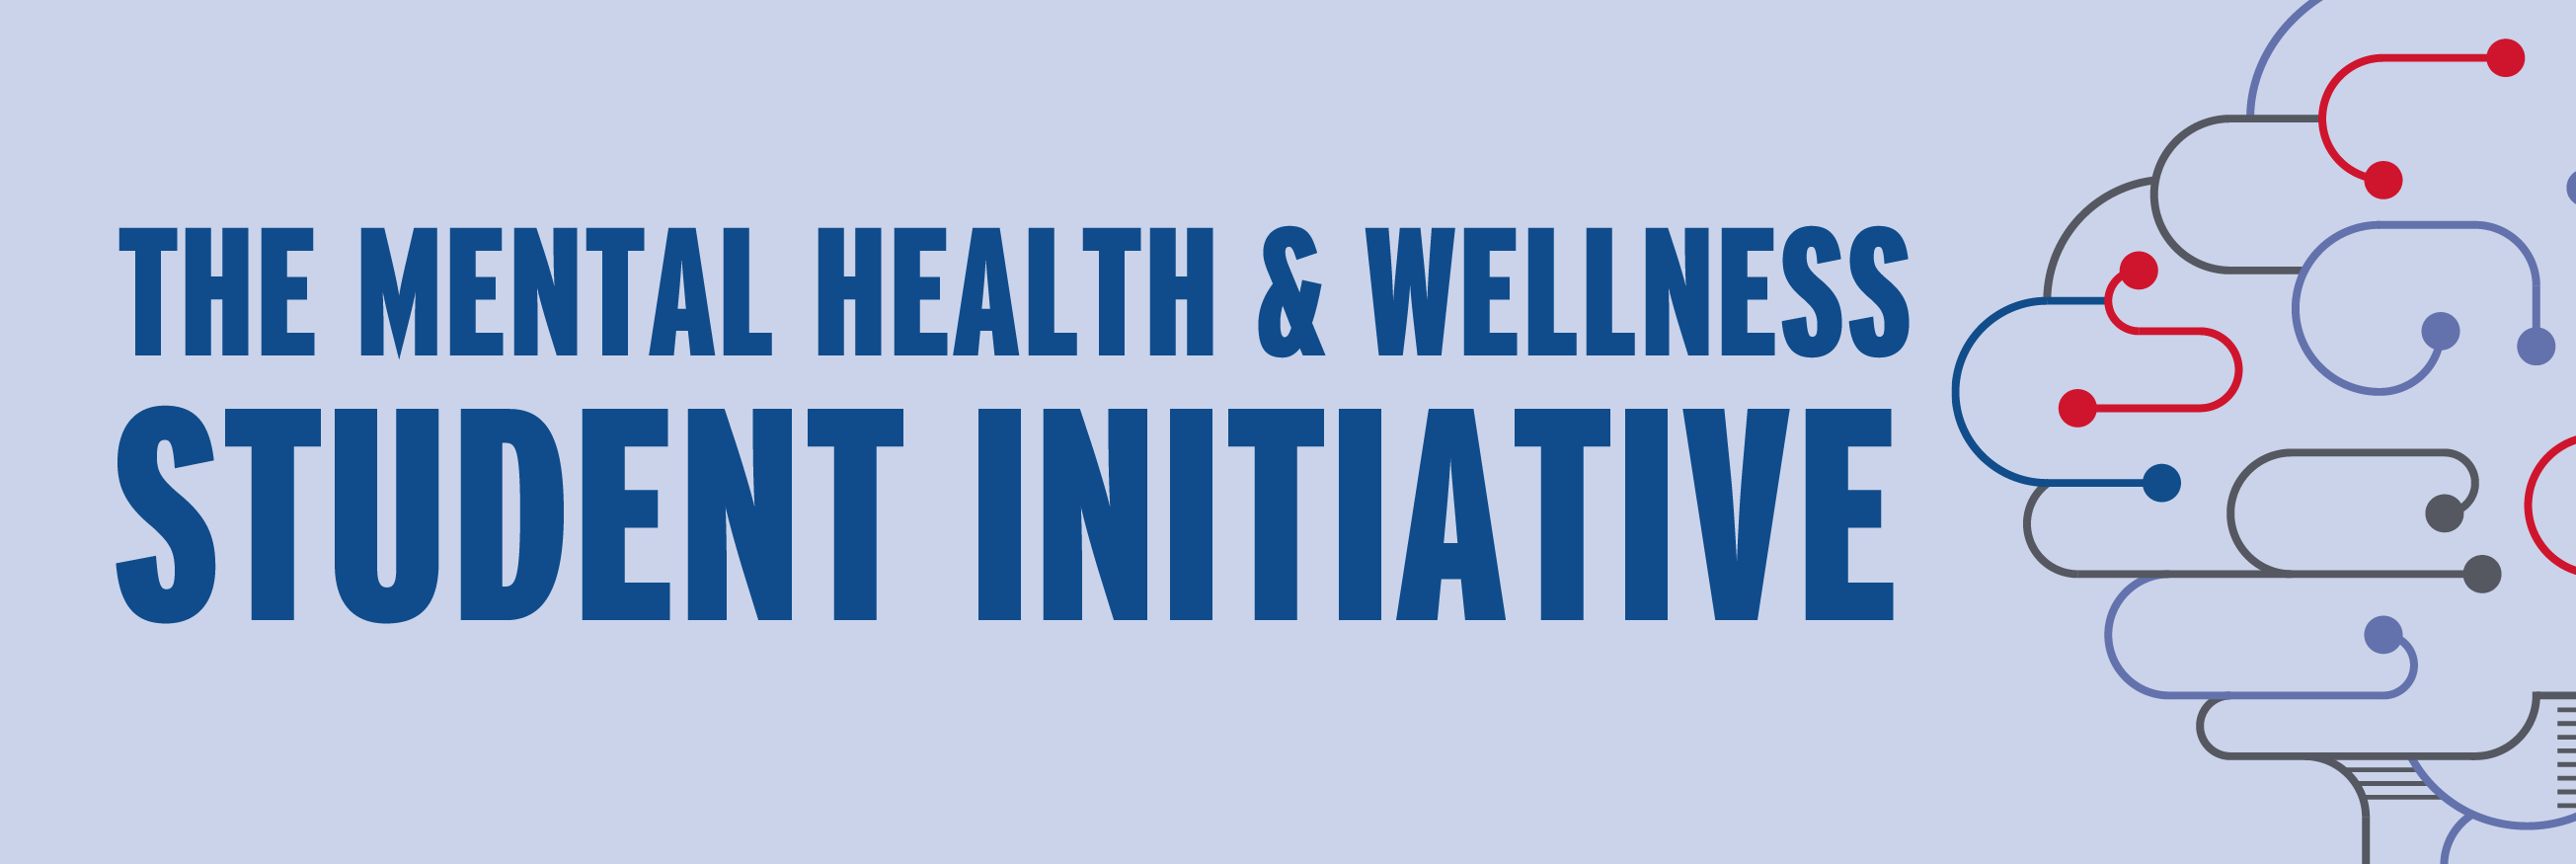 Mental Health & Wellness Student Initiative